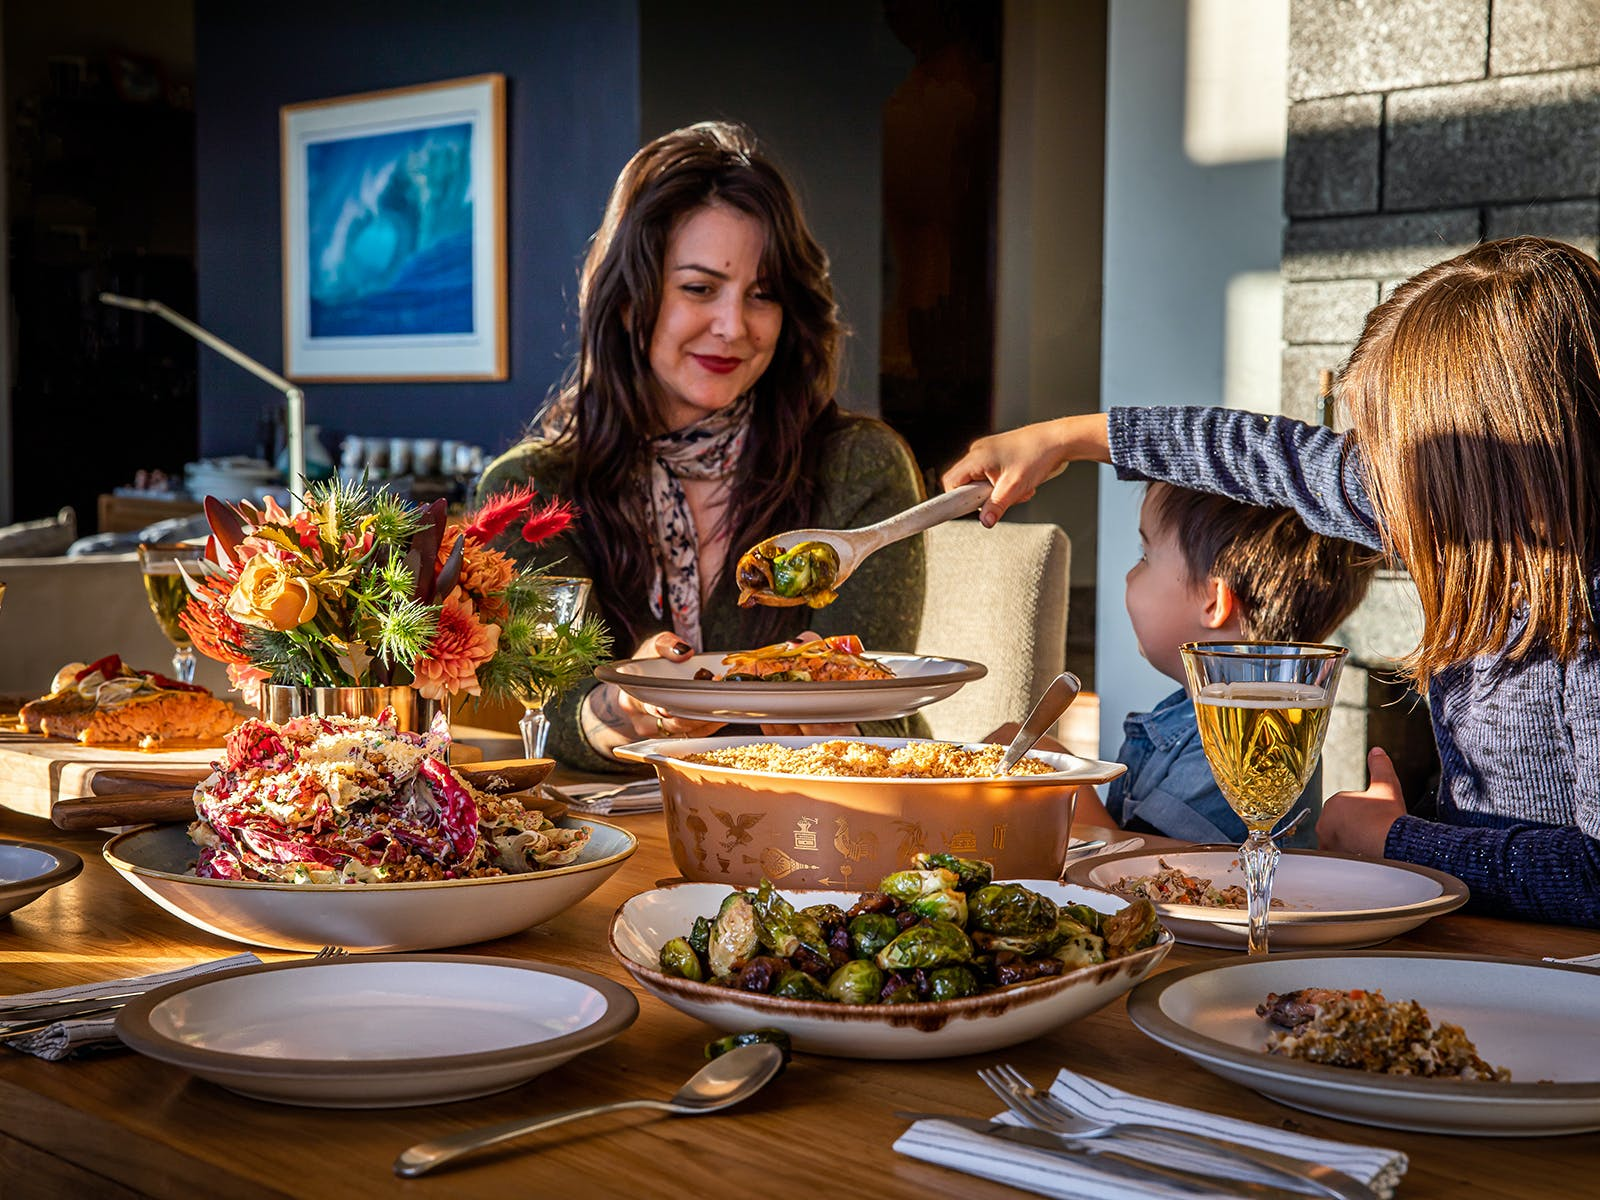 chef gabriel's family dishes up their holiday inspired meal